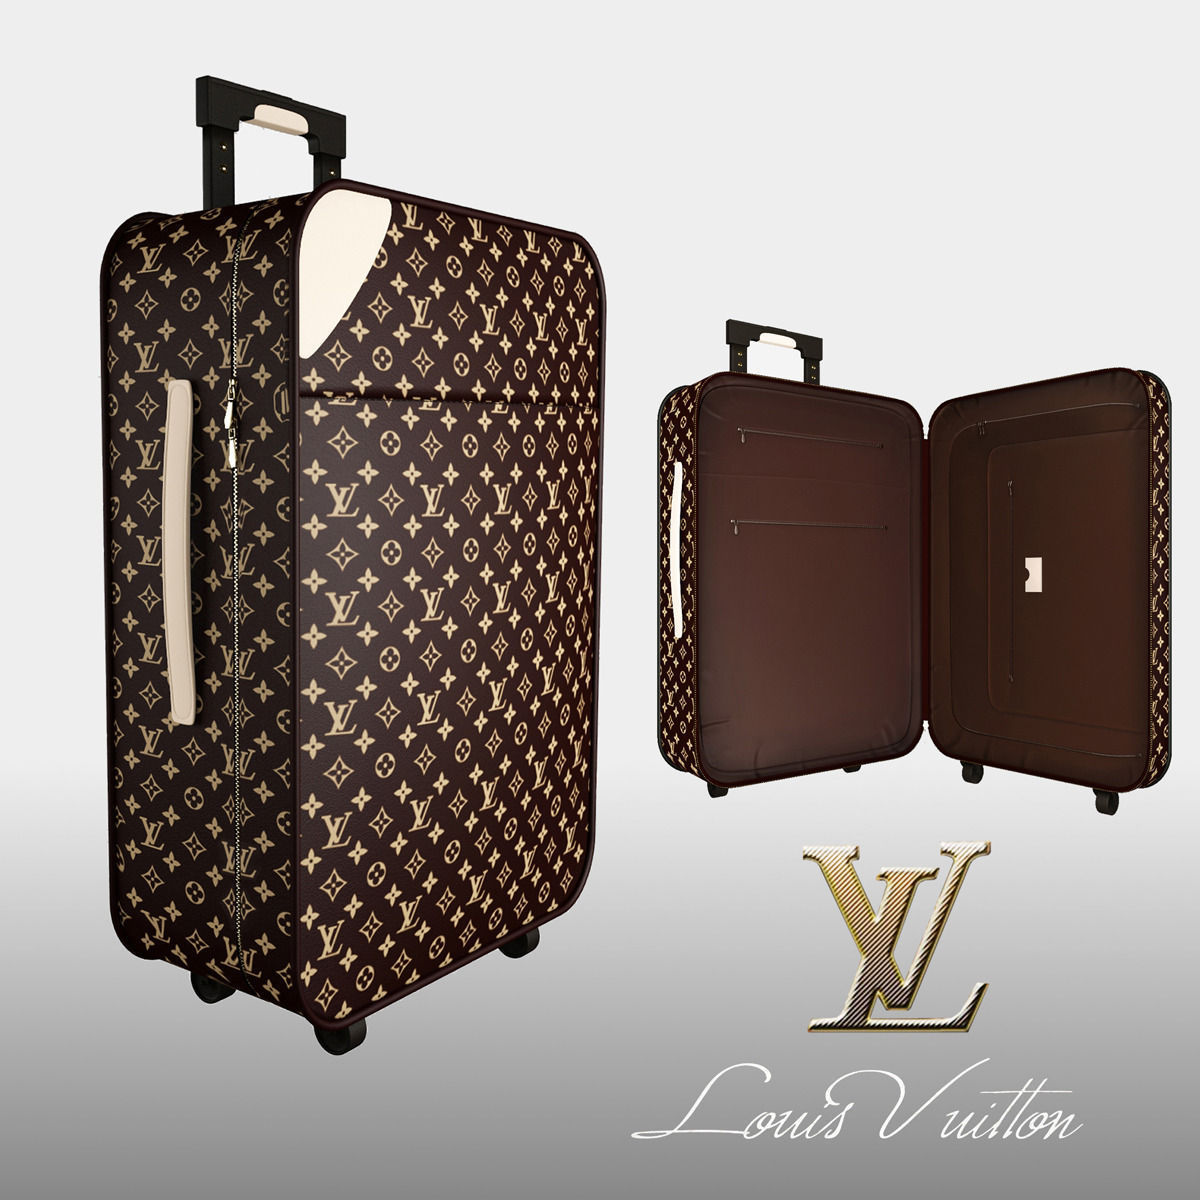 Louis Vuitton Luggage Bag 3d Model Max Obj Mtl Fbx 1